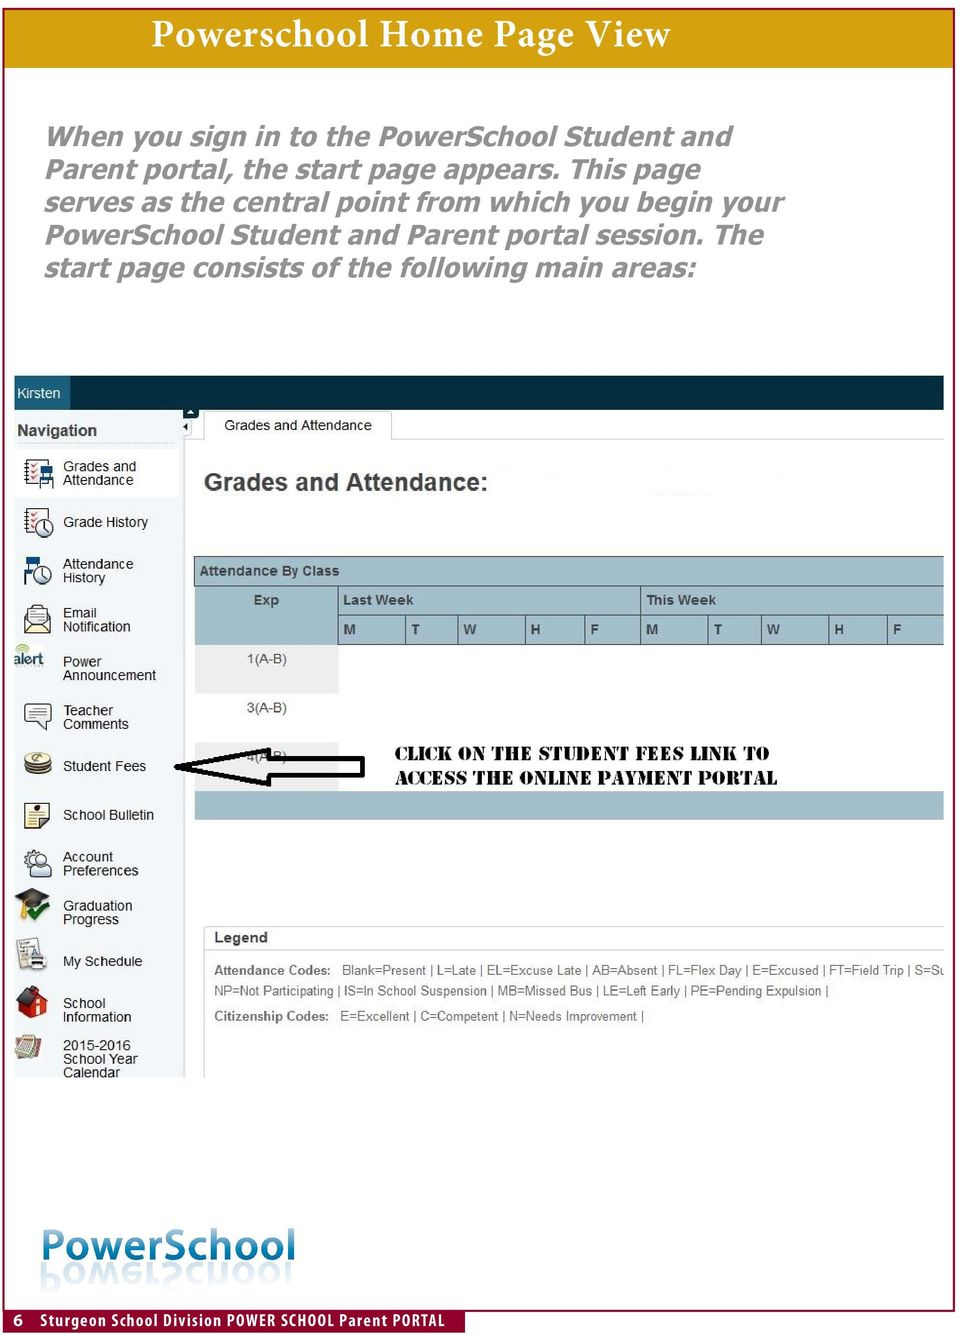 This page serves as the central point from which you begin your PowerSchool